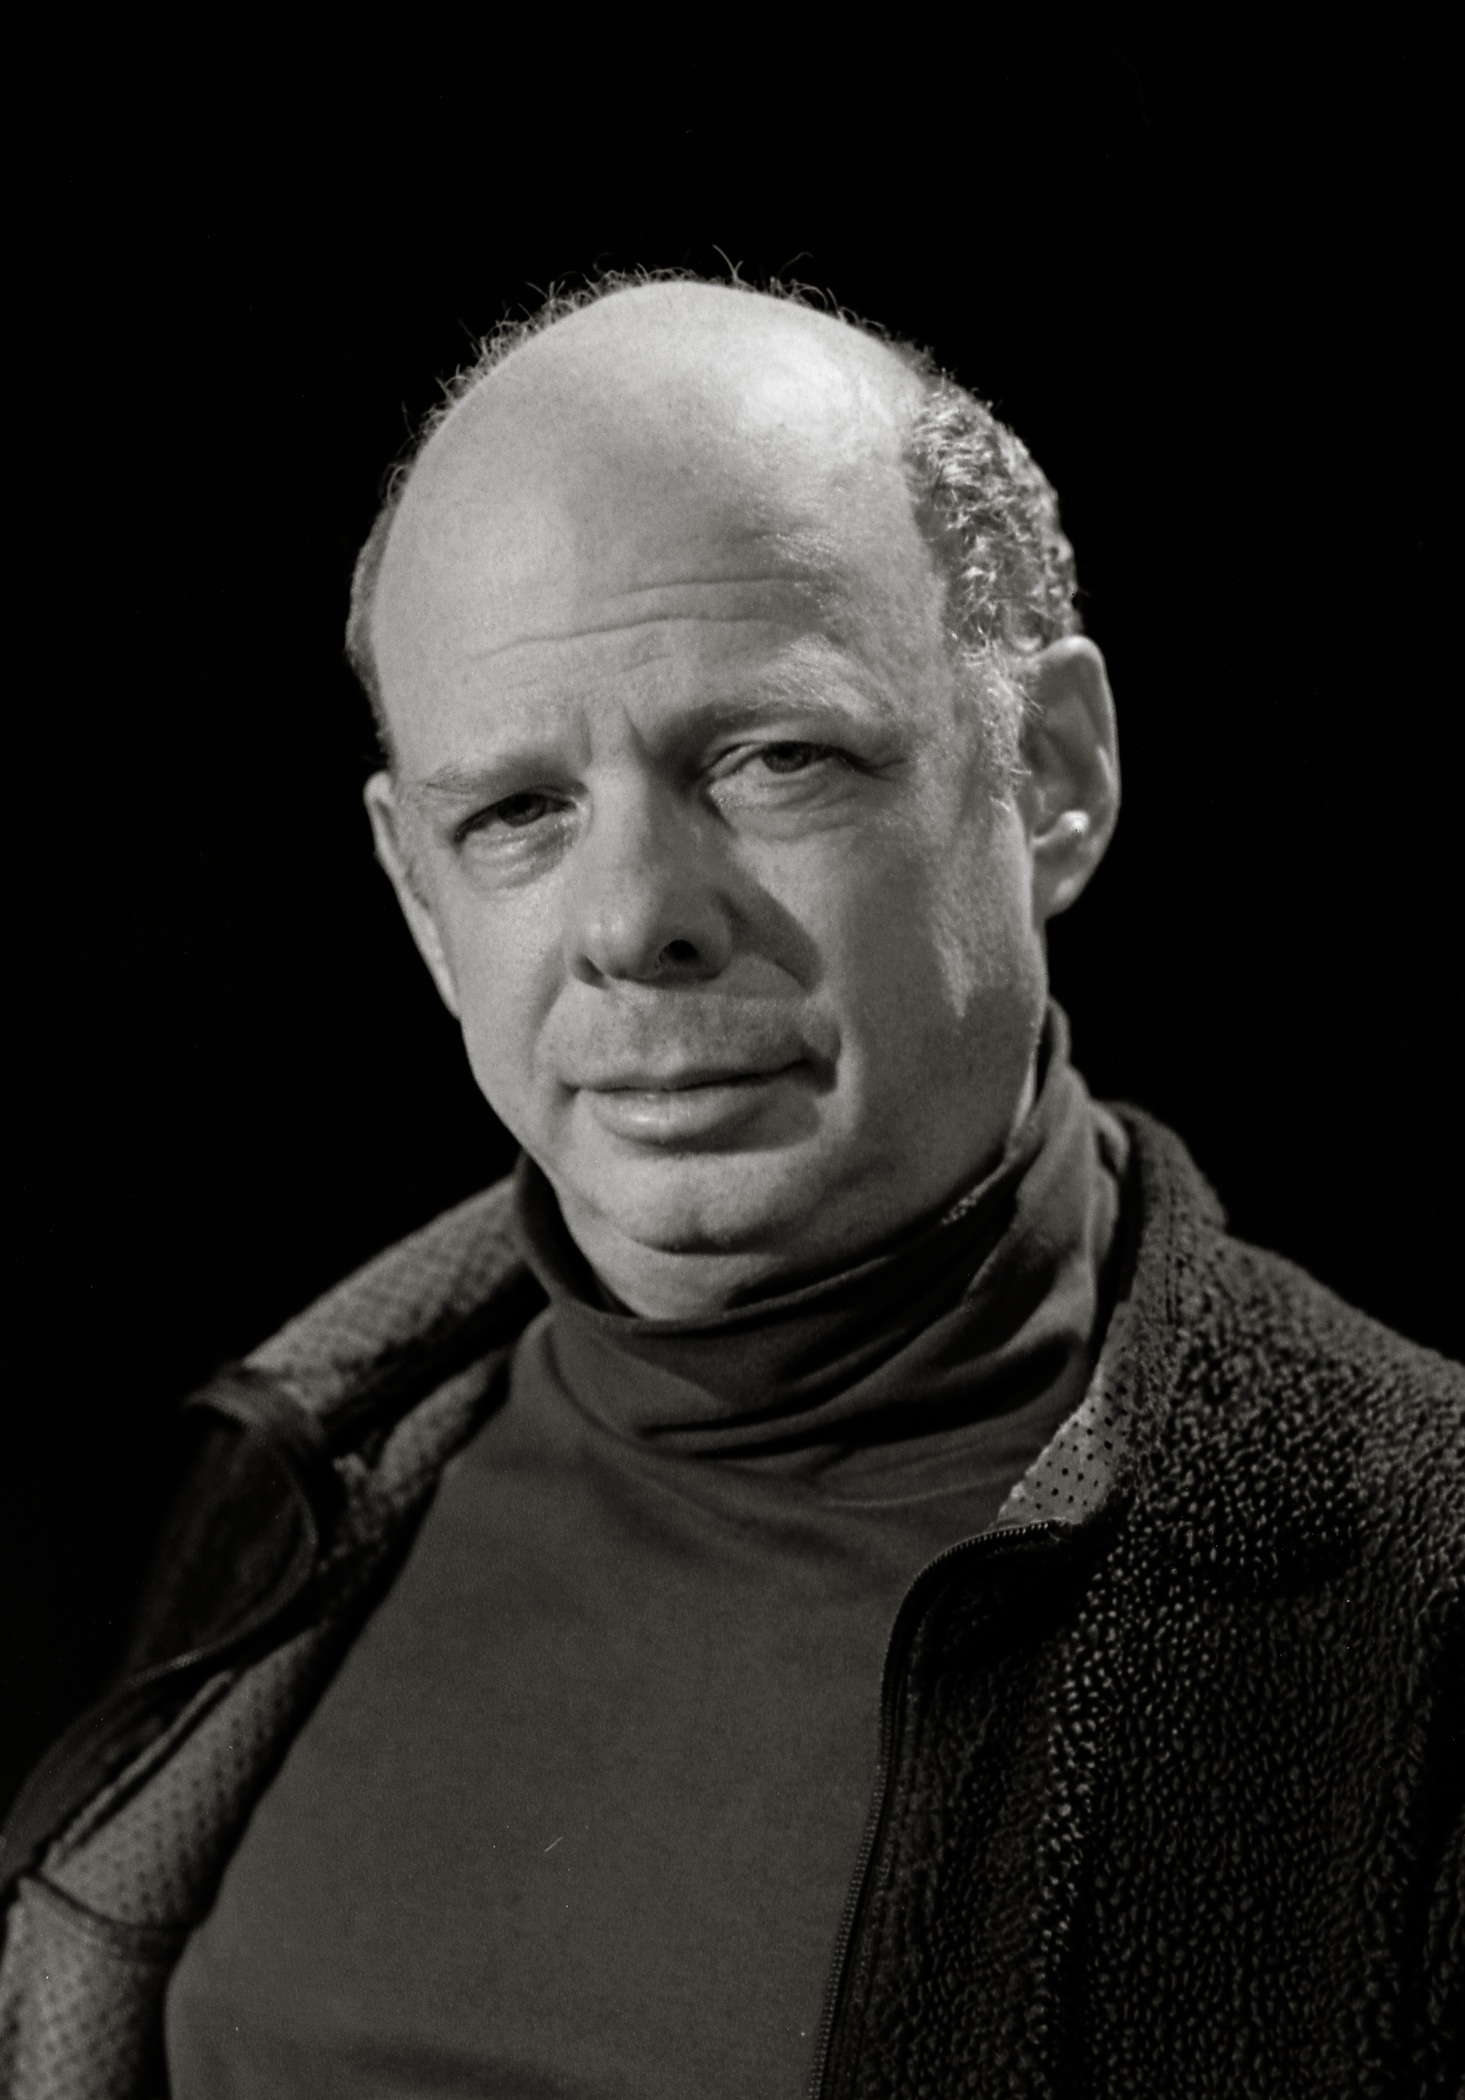 the fever by wallace shawn essay Essays is a collection of wallace shawn's thoughts on politics and art the essays are about evenly divided between the two topics the essays are about evenly divided between the two topics the politics are simplistic, and shawn comes across as an idealistic armchair socialist more than a well-reasoned political thinker.